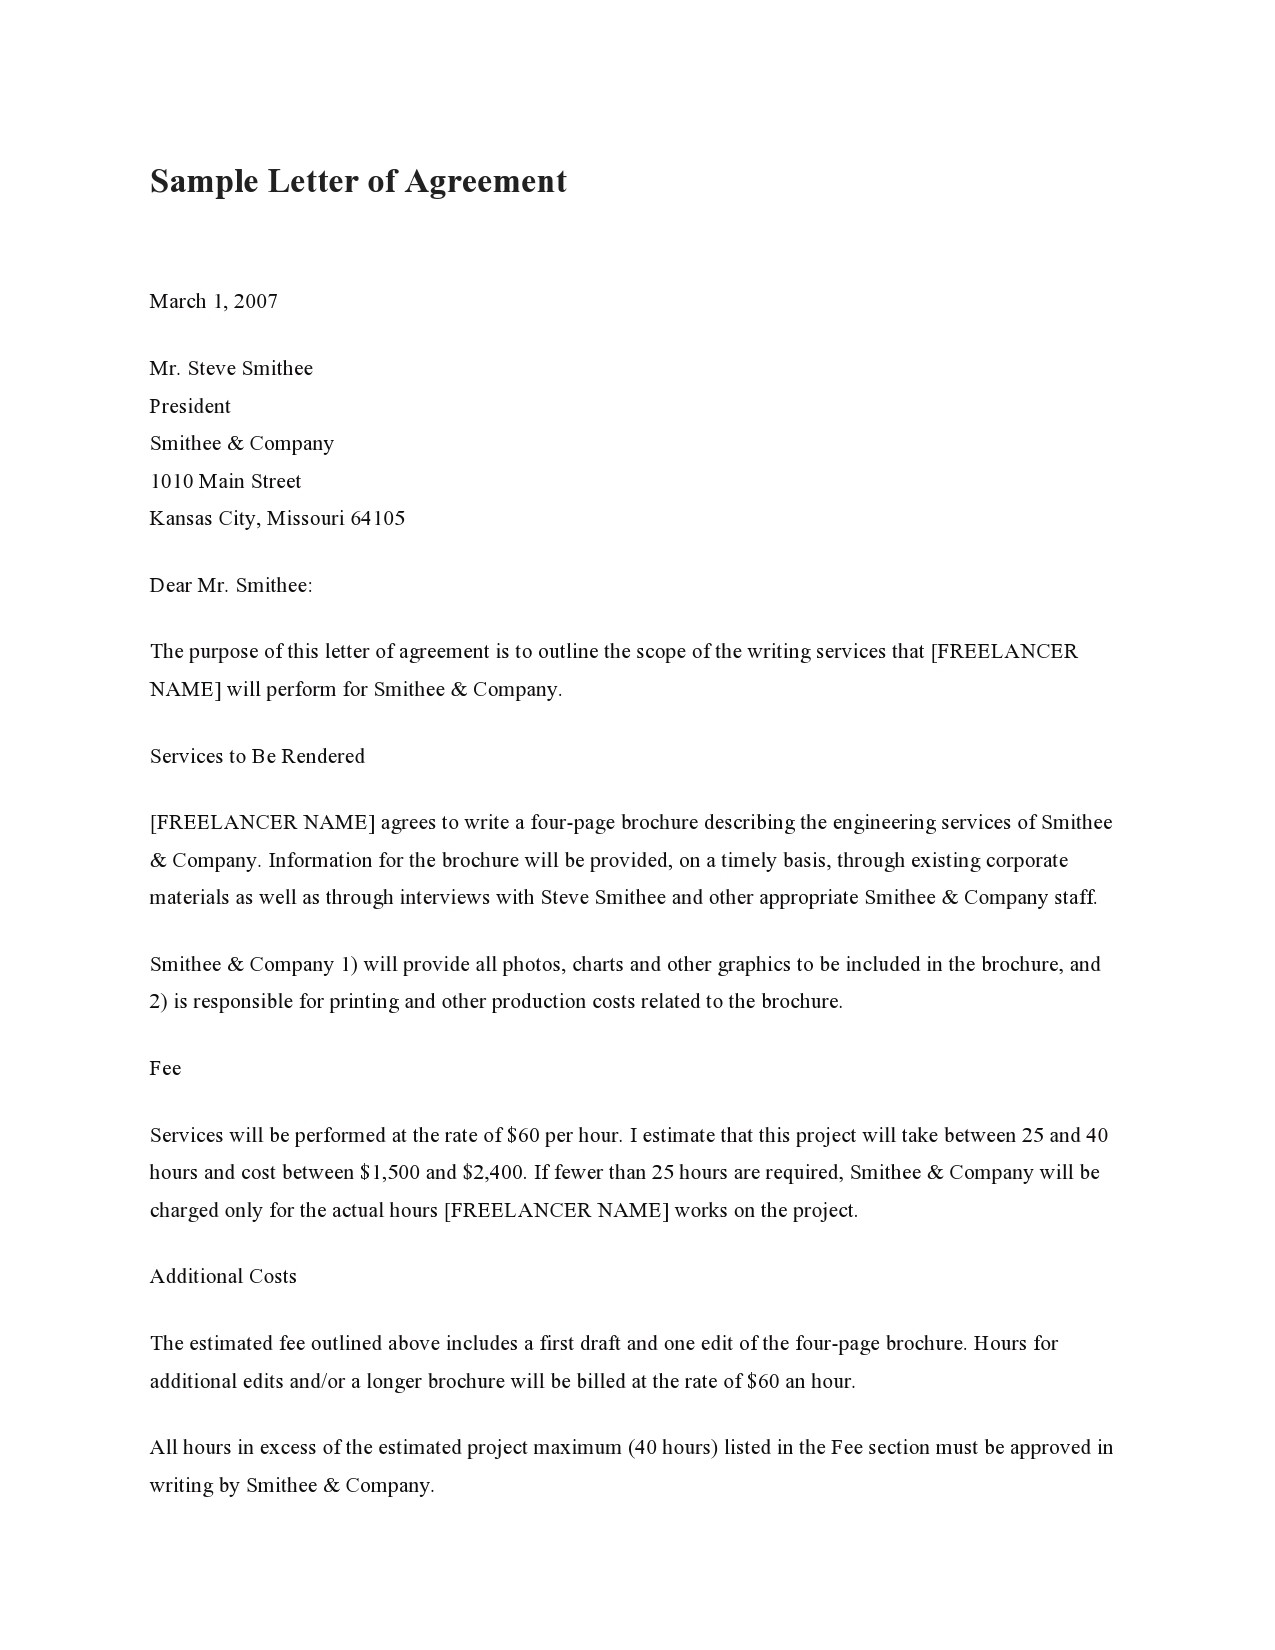 Free letter of agreement 34